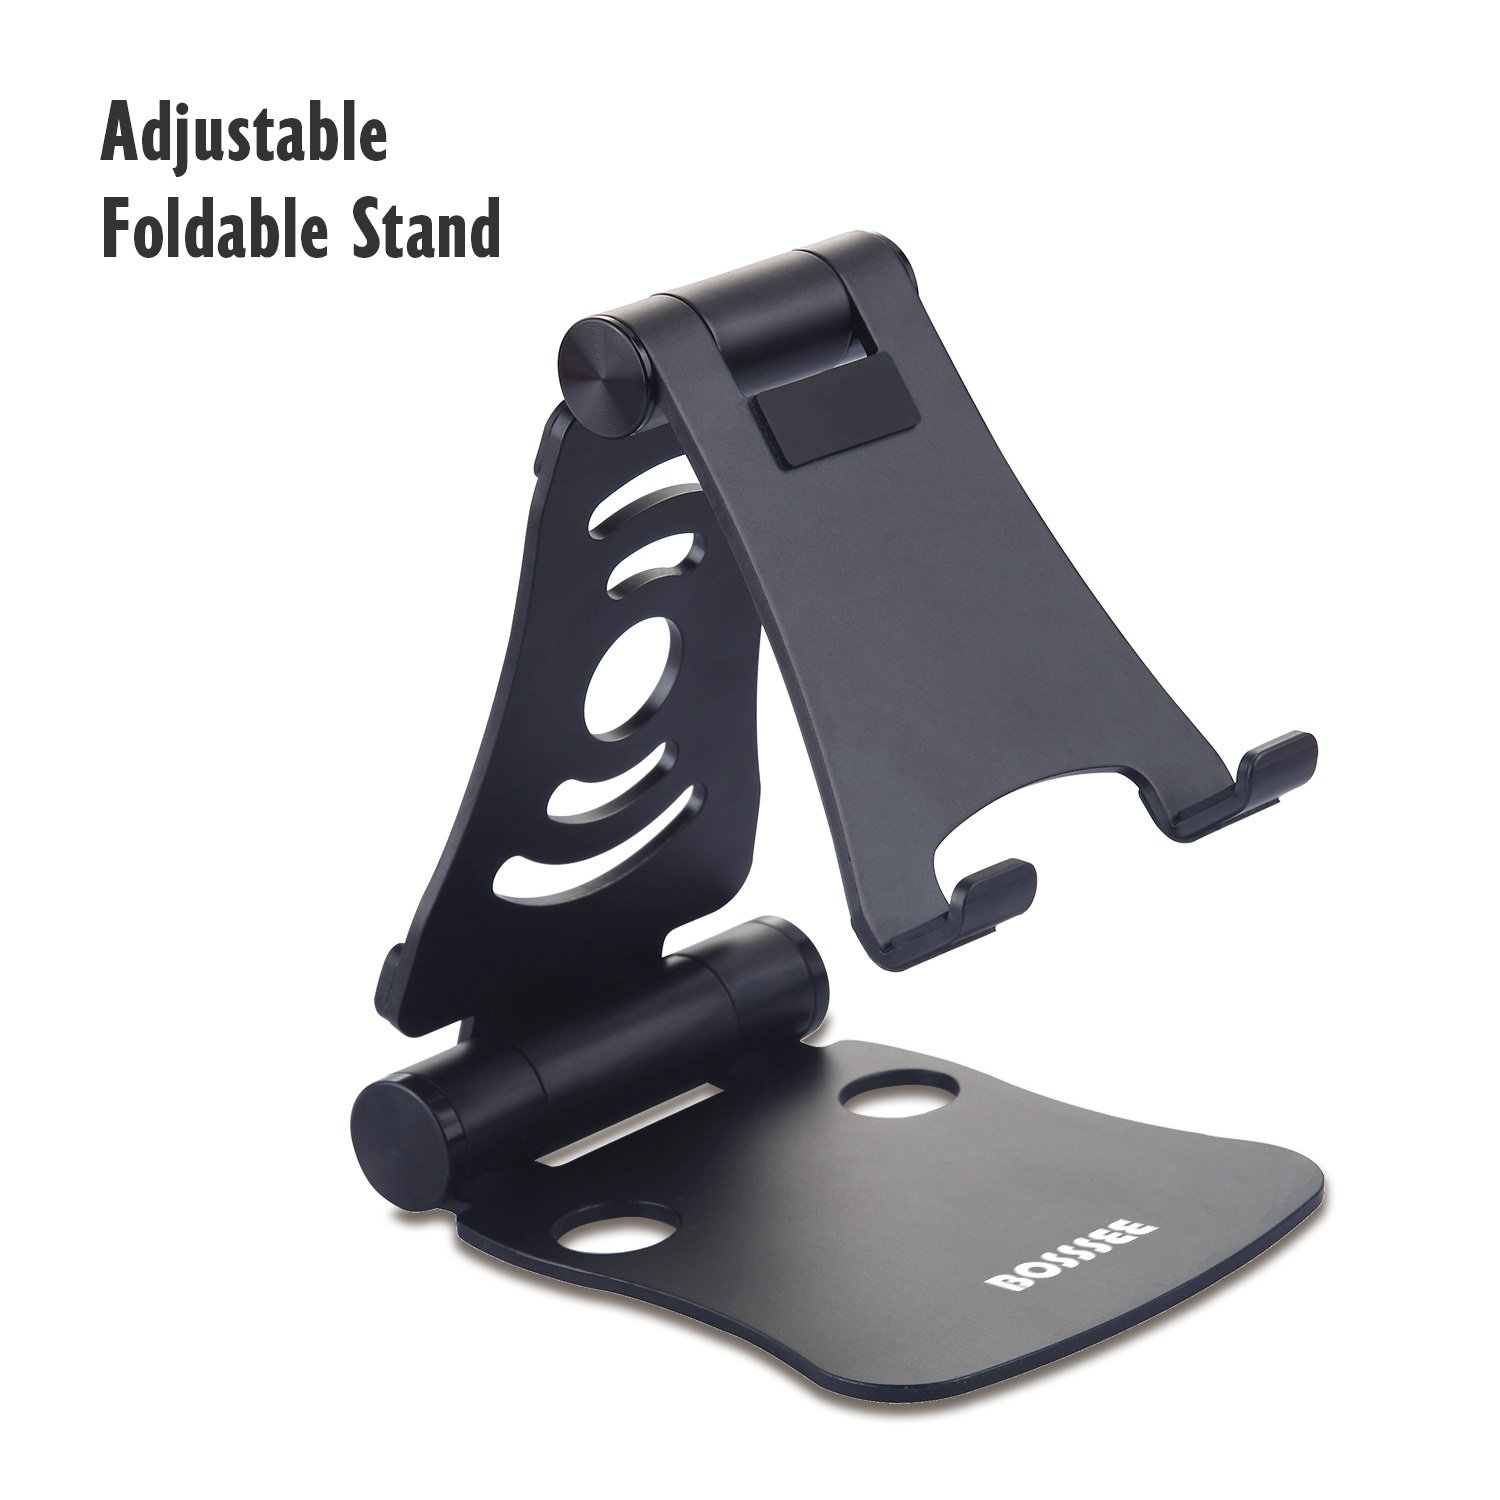 Cell Phone Stand Adjustable Foldable Aluminum Tablet Stand Versatile Portable 270 Degree Desktop iPhone Holder for iPhone iPad Samsung Tablet Macbook Android Smartphone (4-13 inch) (Black)